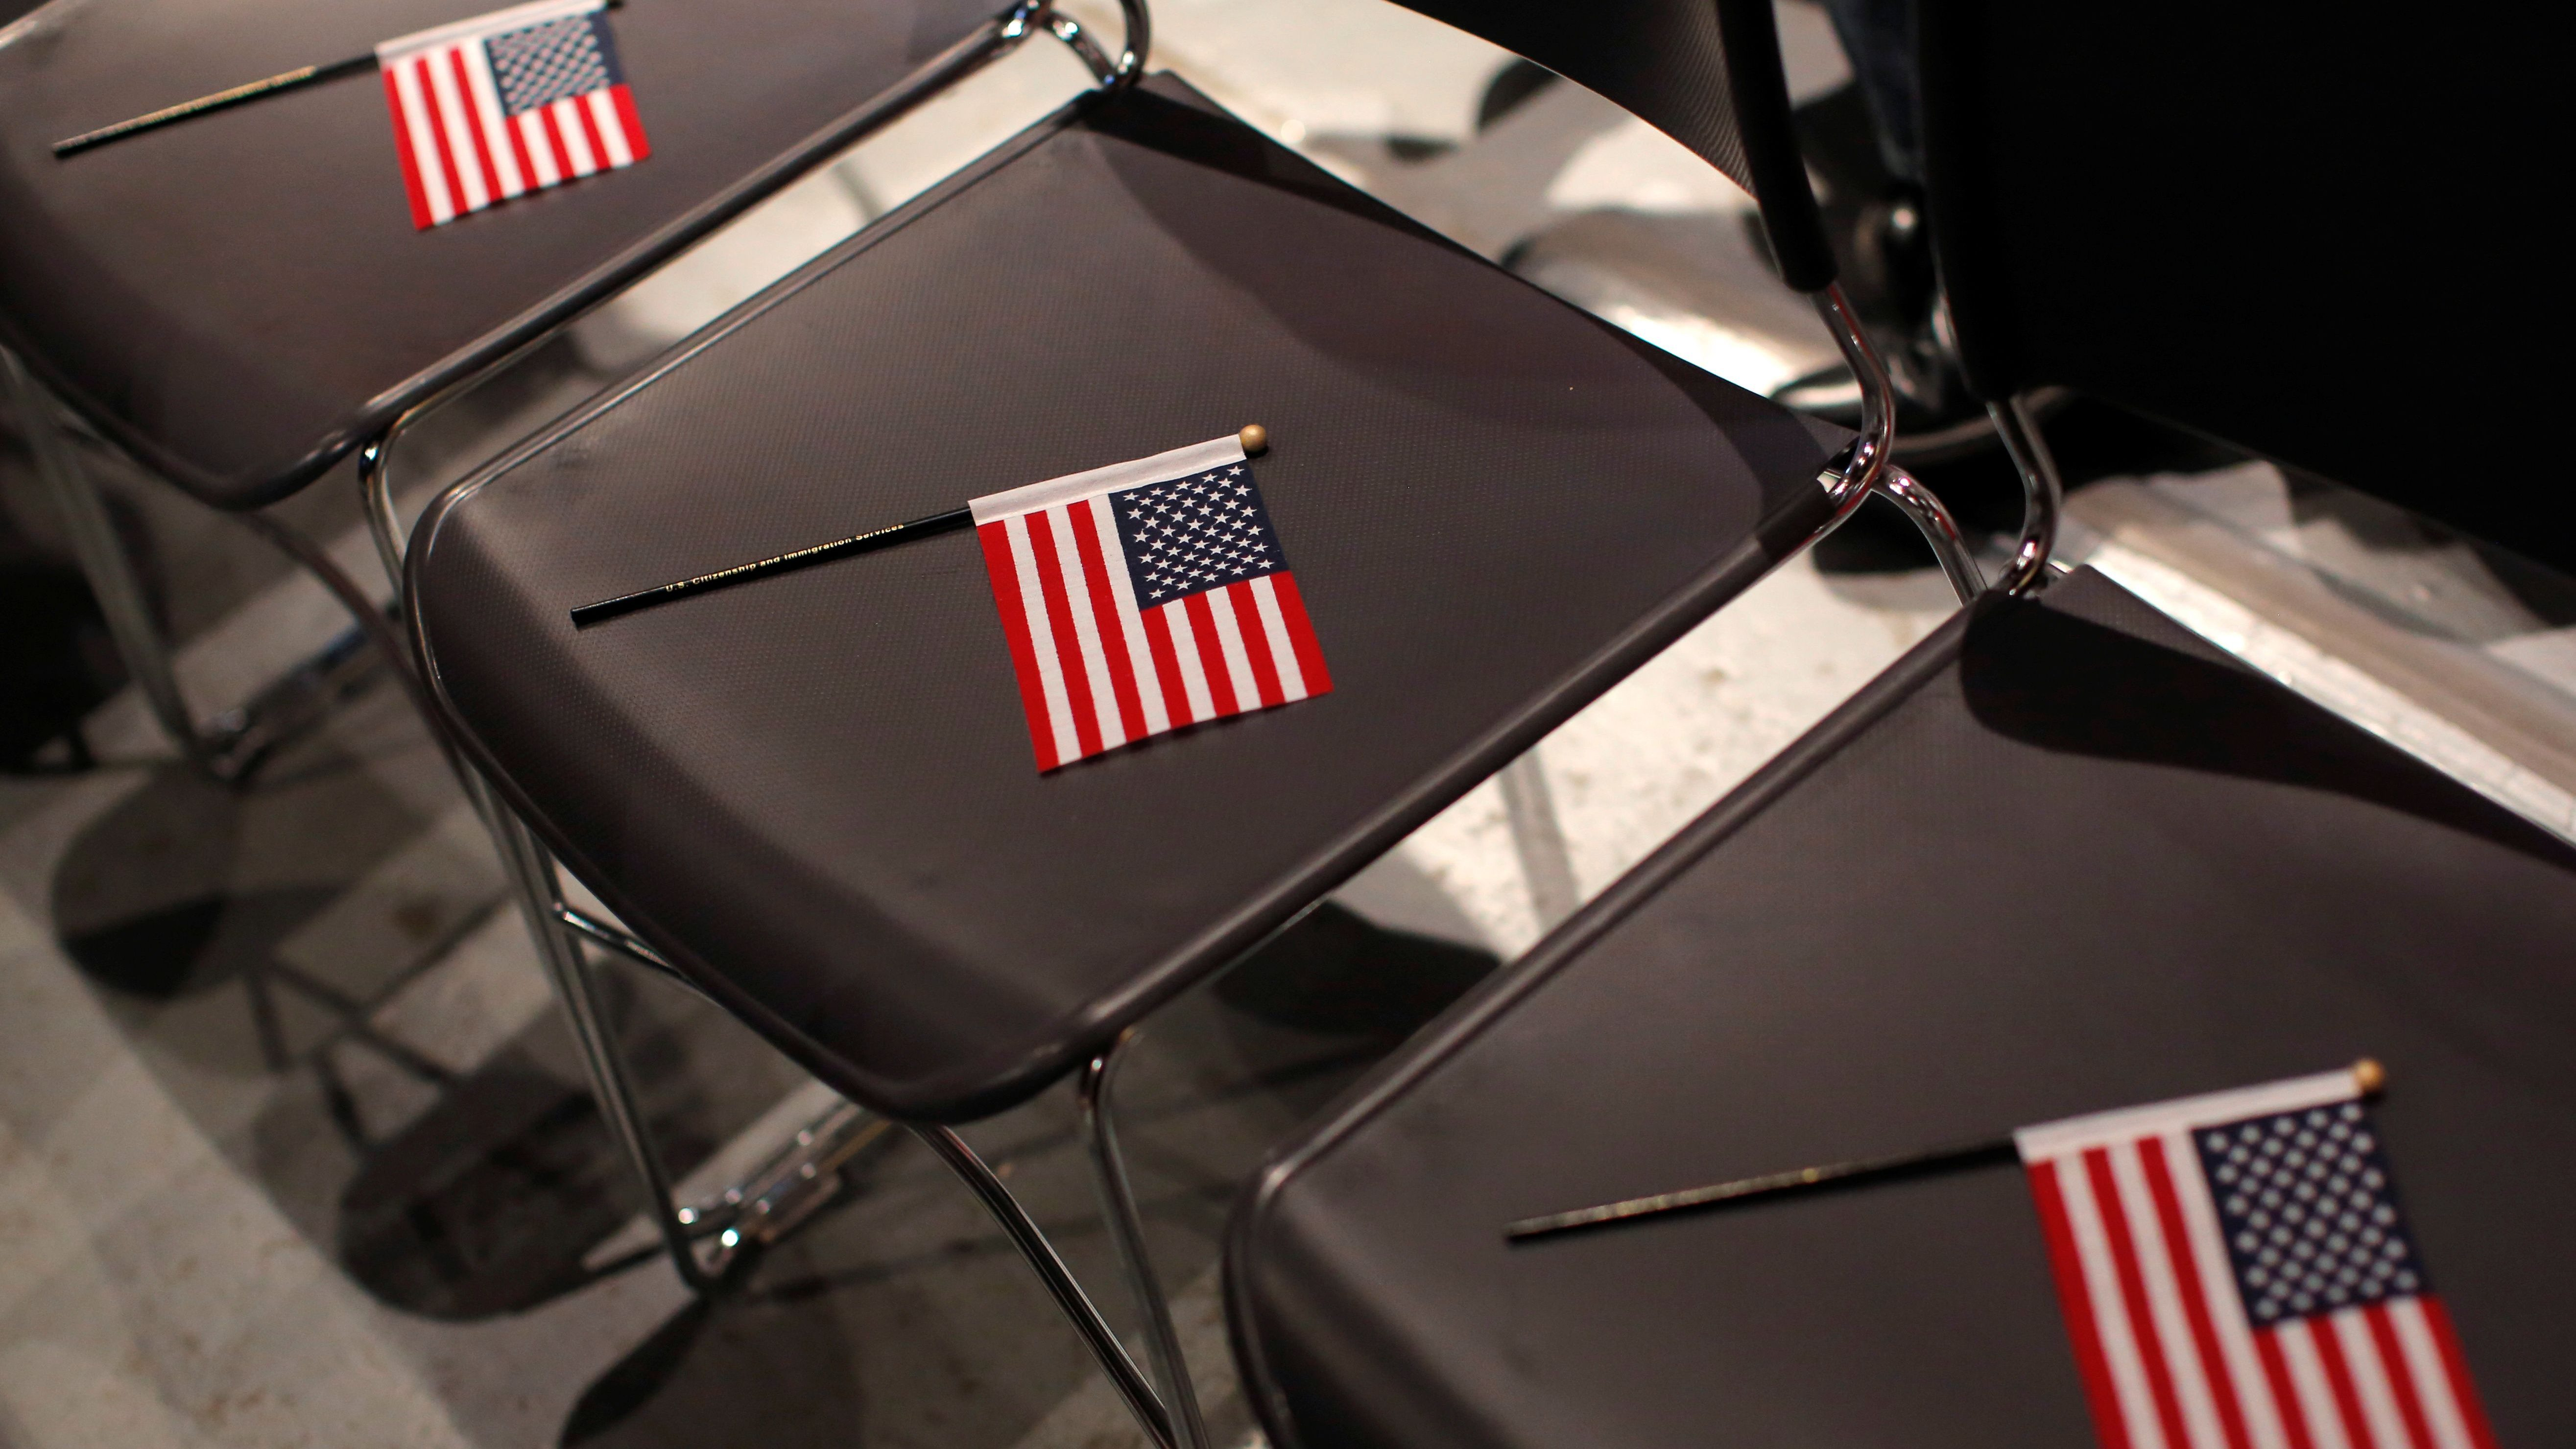 U.S. flags are placed on seats before a special citizenship ceremony for children at the Museum of Food and Drink in Brooklyn, New York City, U.S. December 23, 2016. REUTERS/Andrew Kelly - RC17FDA55C30